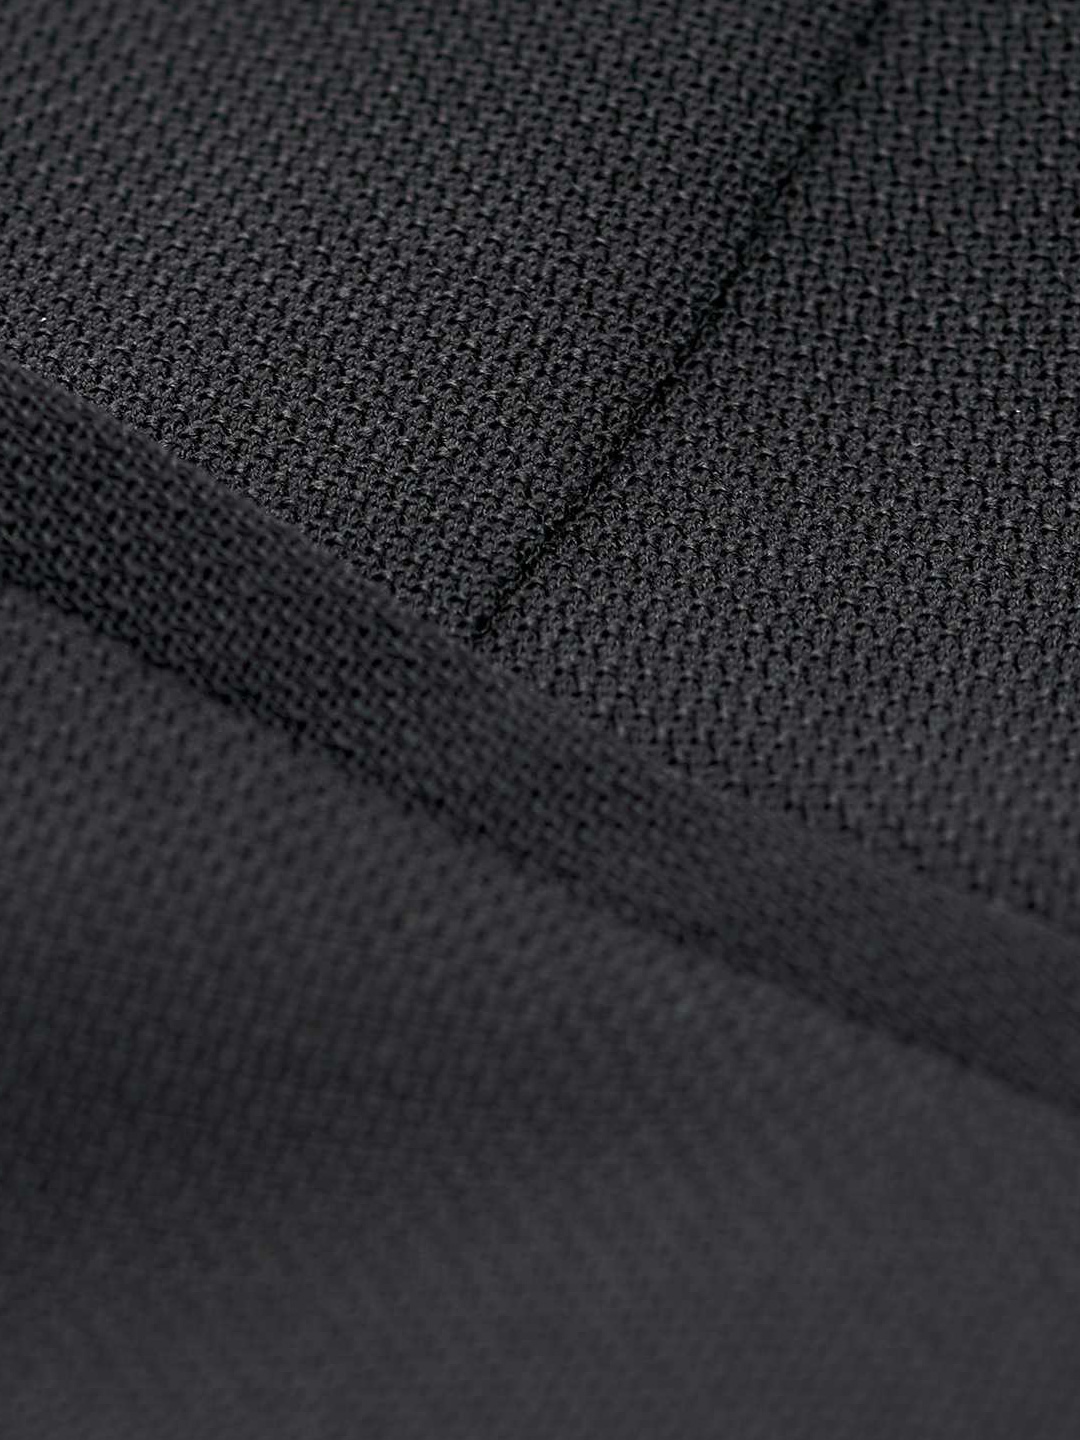 A0478-Lovann-5-Trouser-Tiger-of-Sweden-Black-close-up-fabric